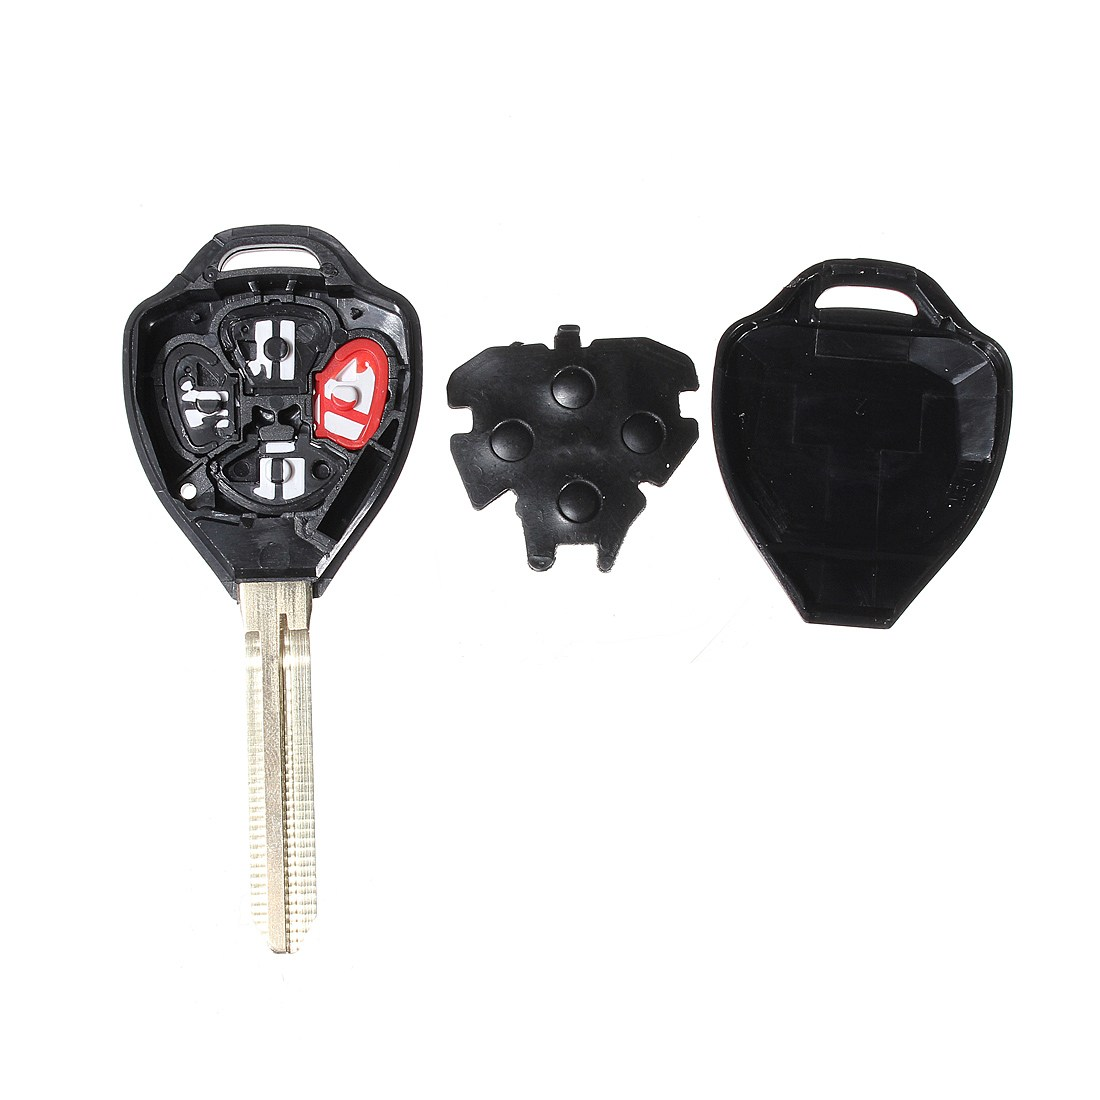 4 Button Remote Key Case Cover Shell Fob w/ Uncut Blade For TOYOTA Corolla 2008 2009 2010 2011 2012